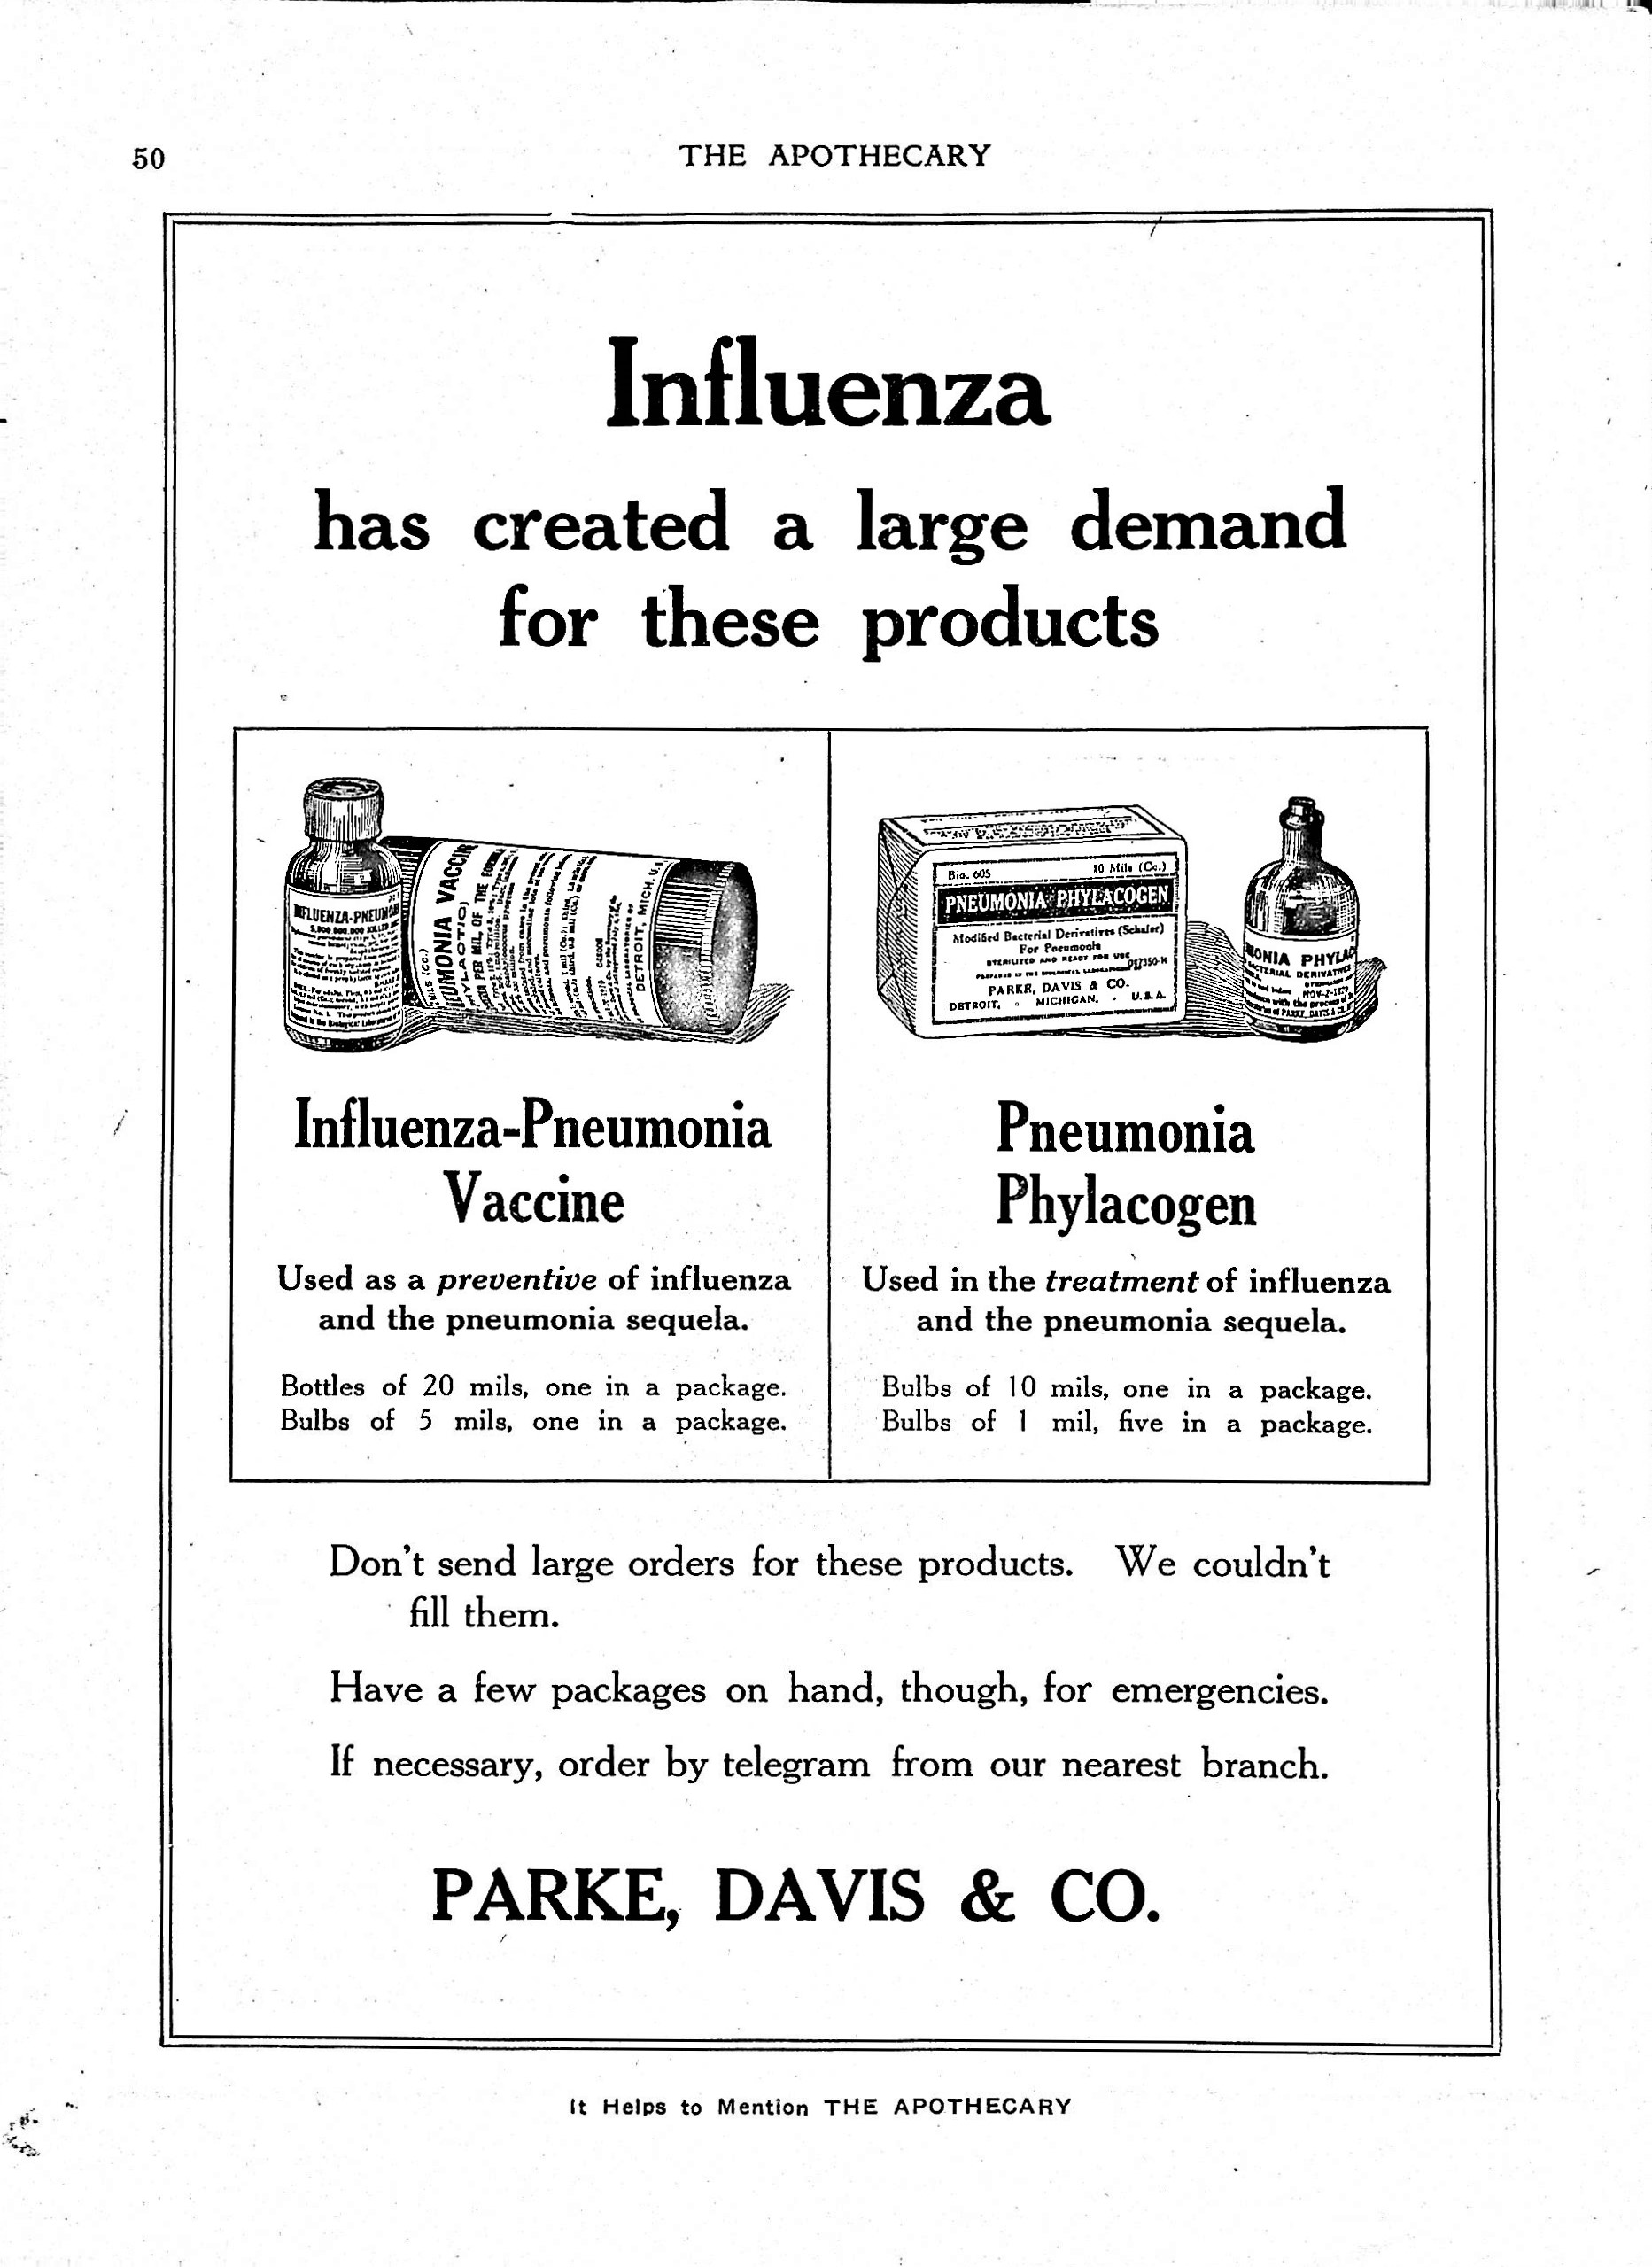 Image for Parke, Davis & Co. advertisement in The Apothecary and New England Druggist, March 1919